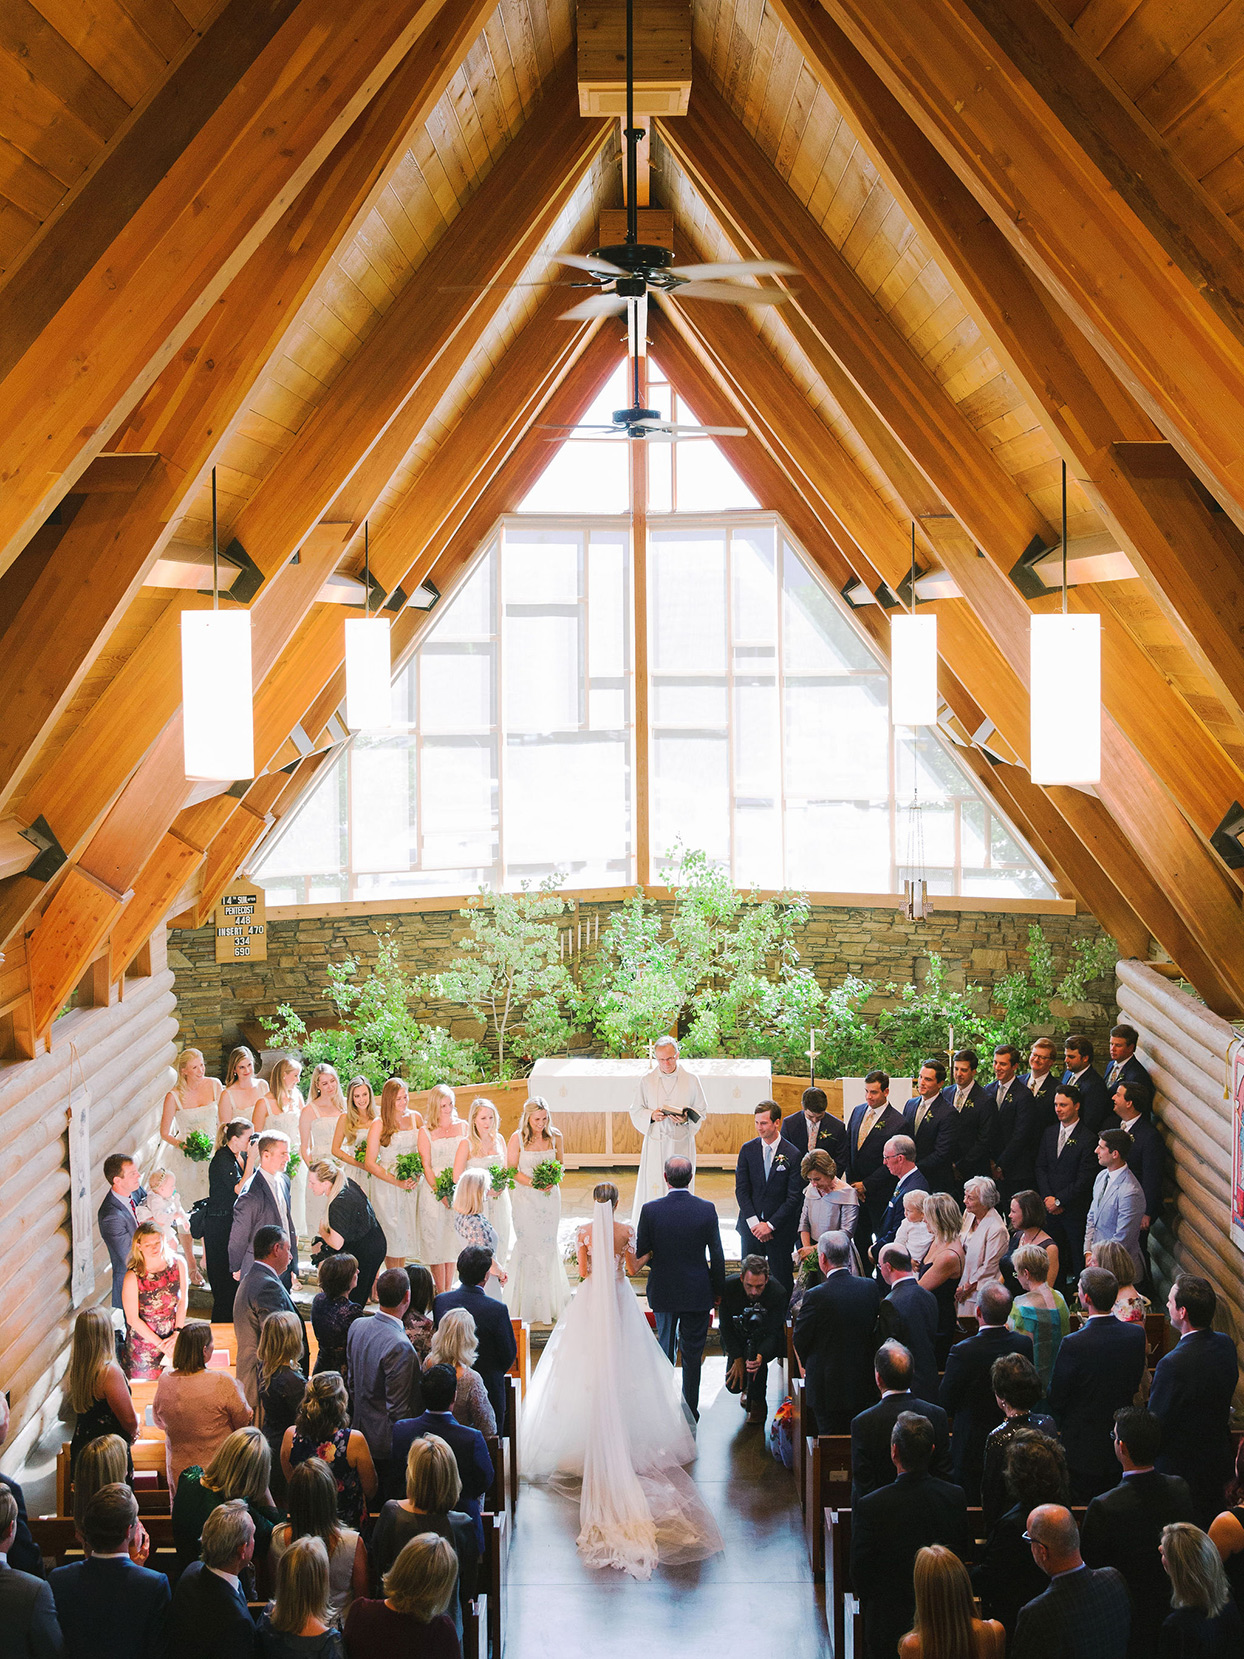 overhead view of wedding ceremony at Episcopal church